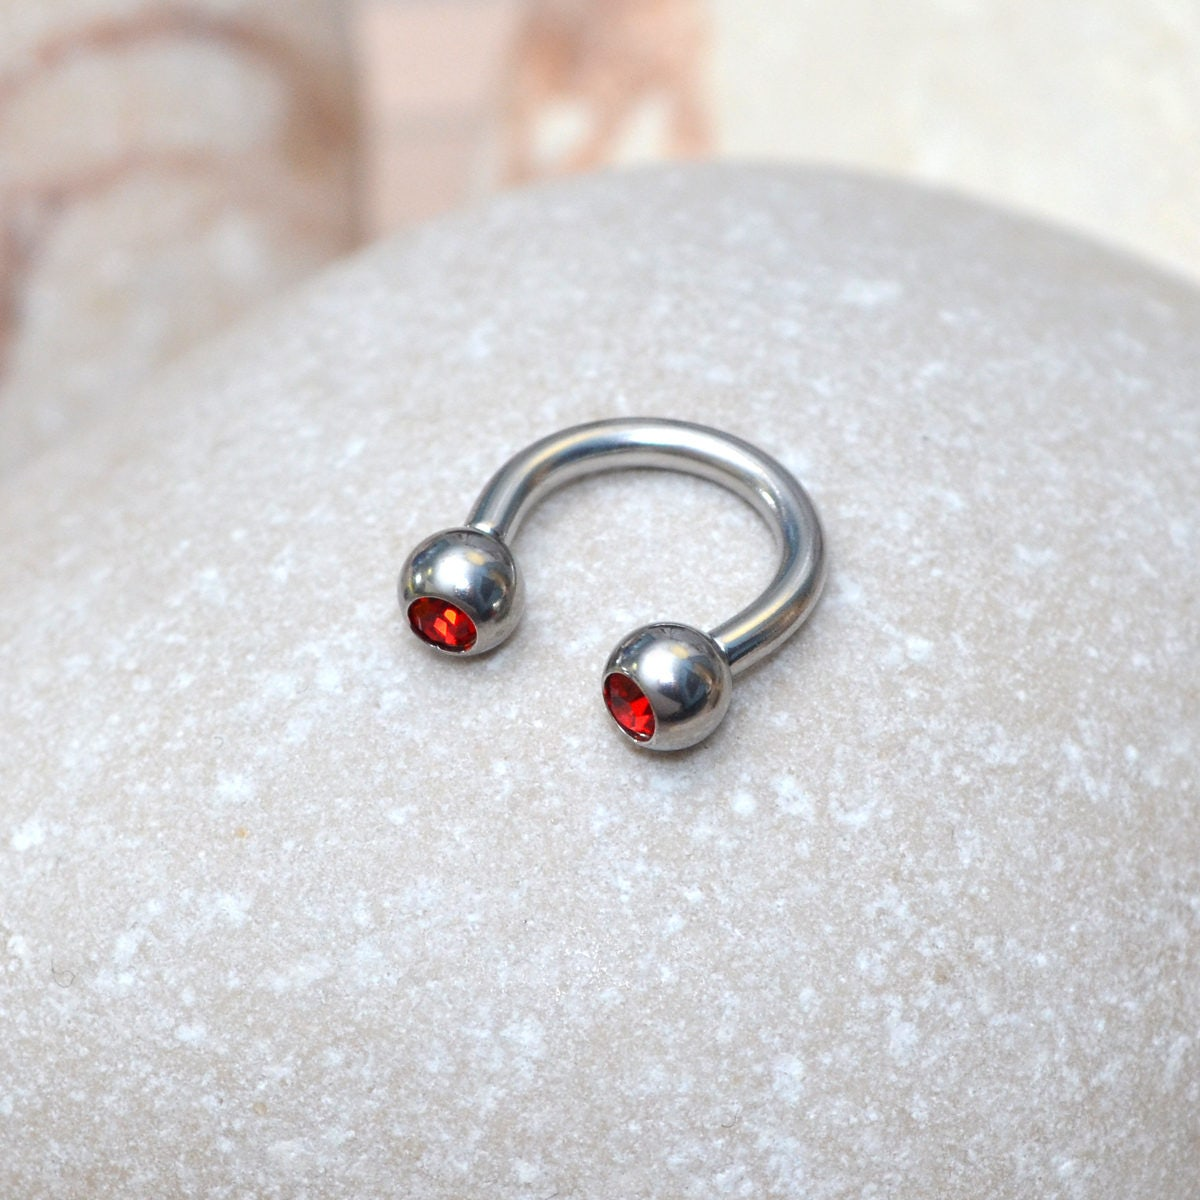 surgical steel septum ring conch piercing septum